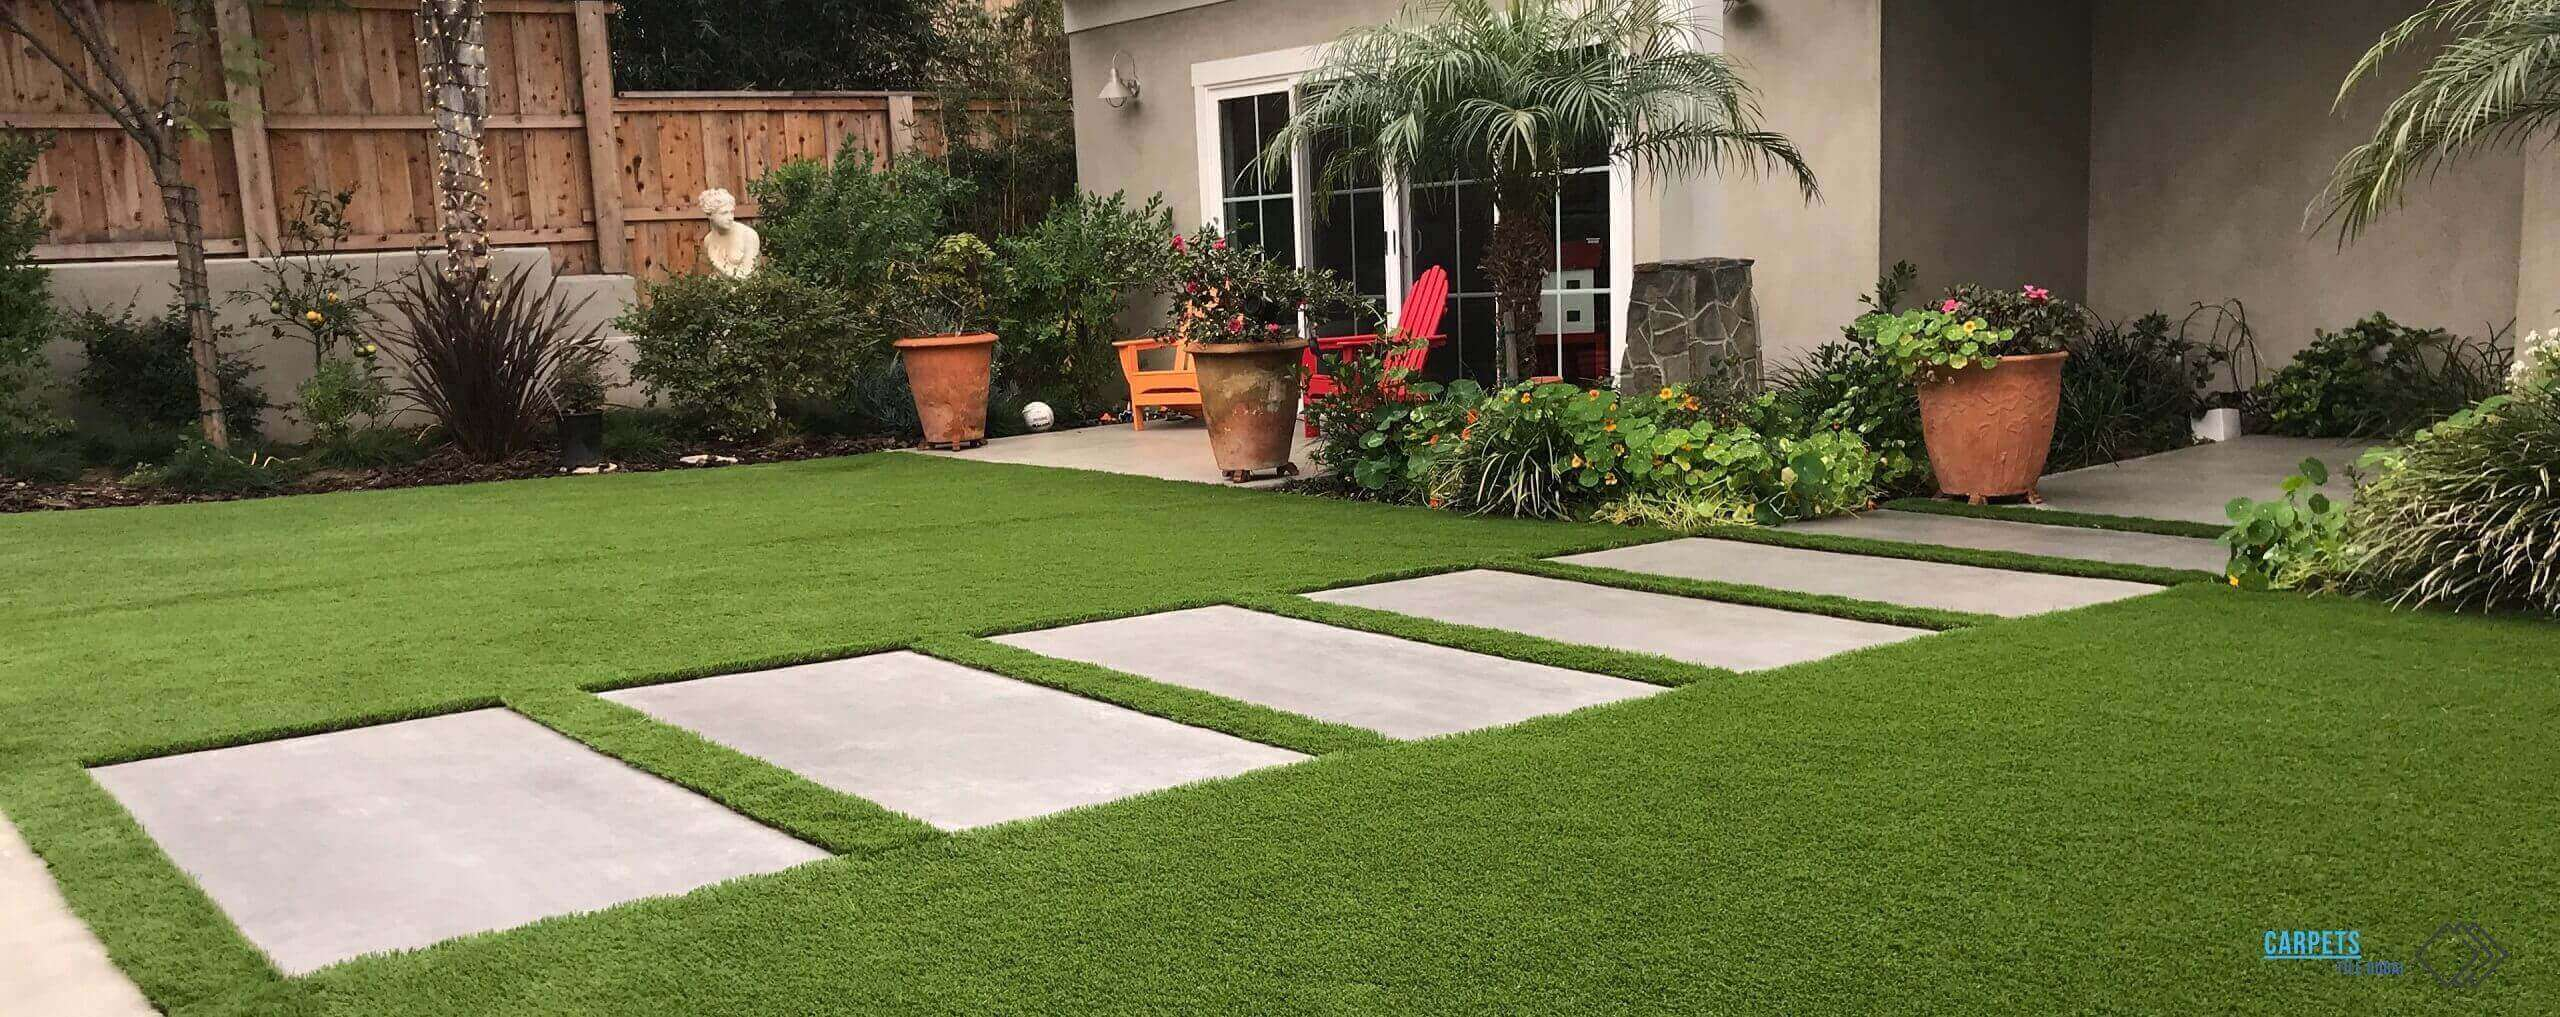 Artificial Grass Dubai BG